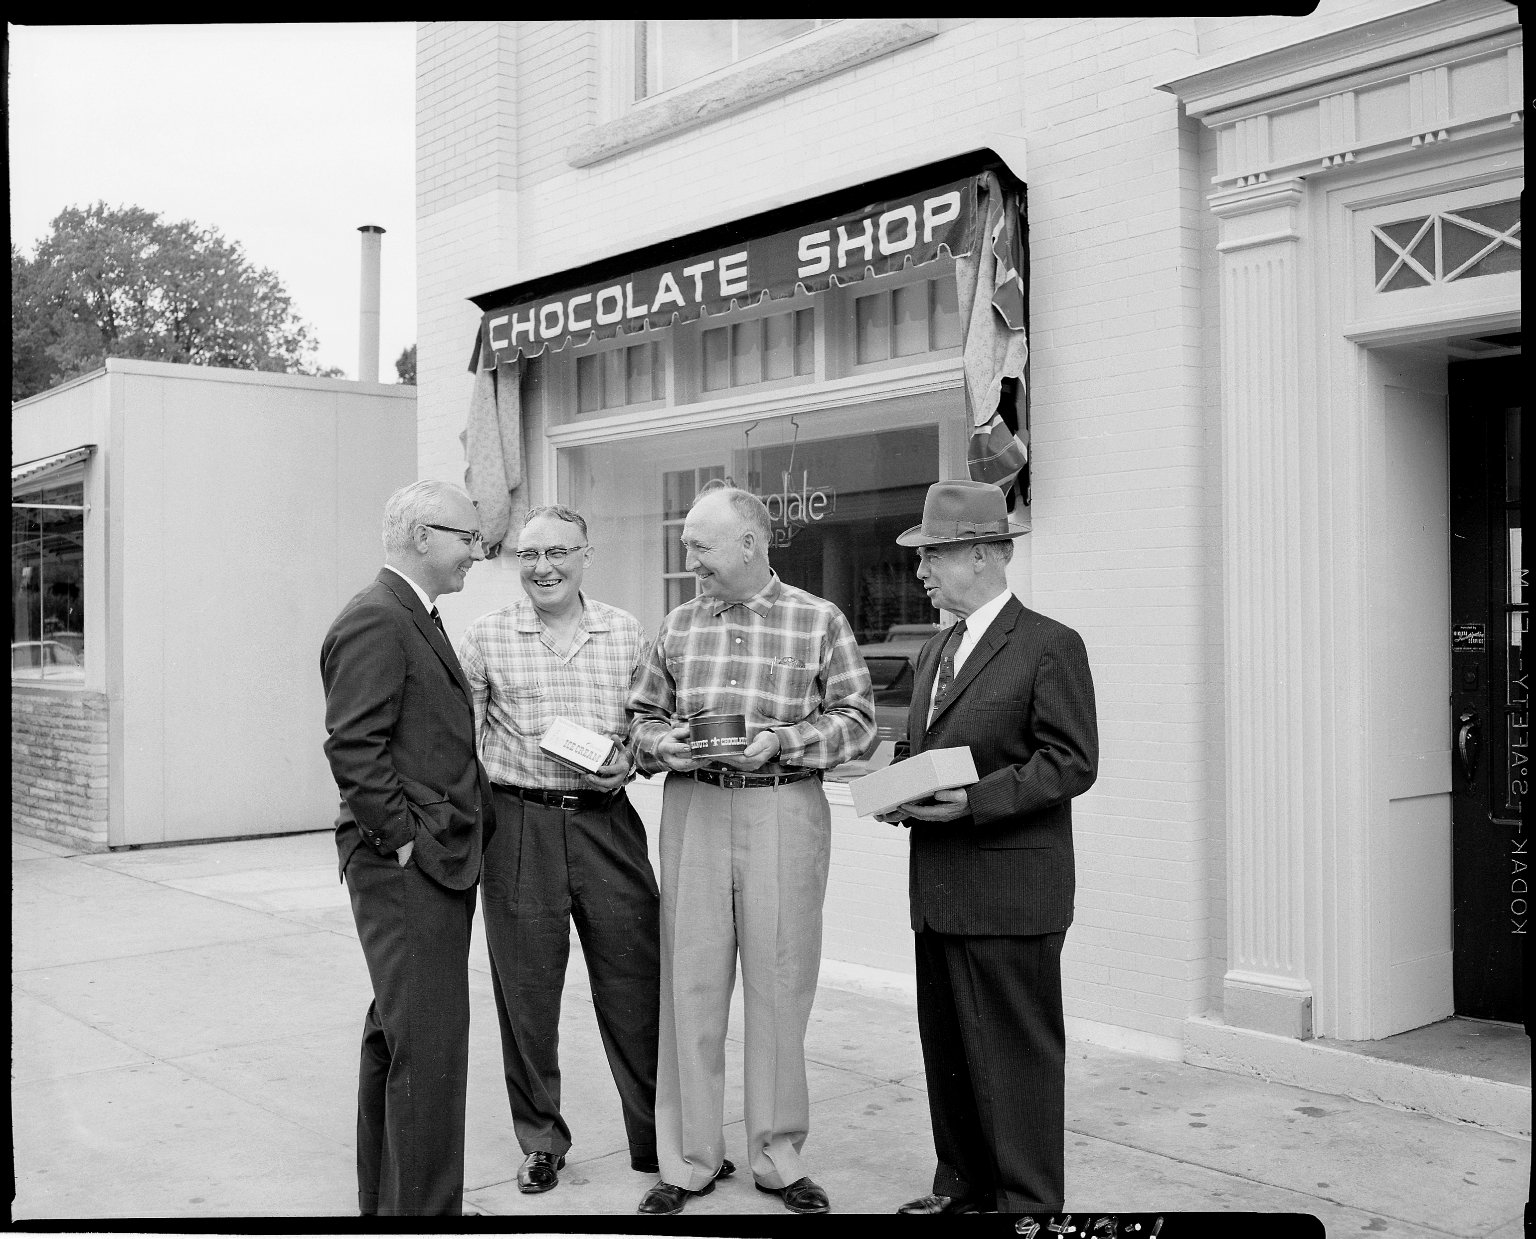 Chocolate Shop, exterior, with four men standing in front